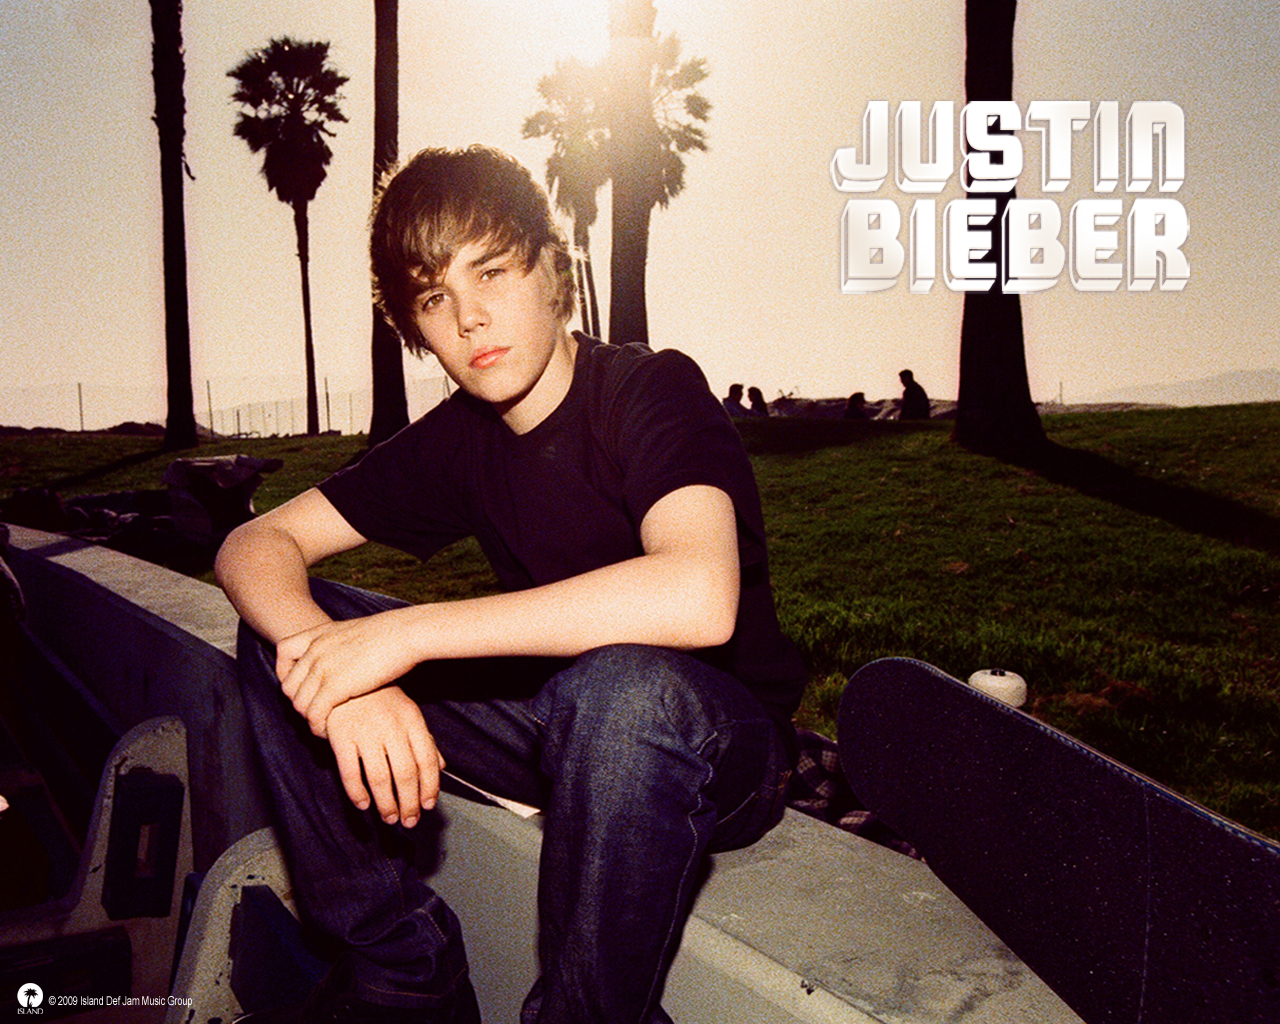 Justin Bieber wallpapers los angeles